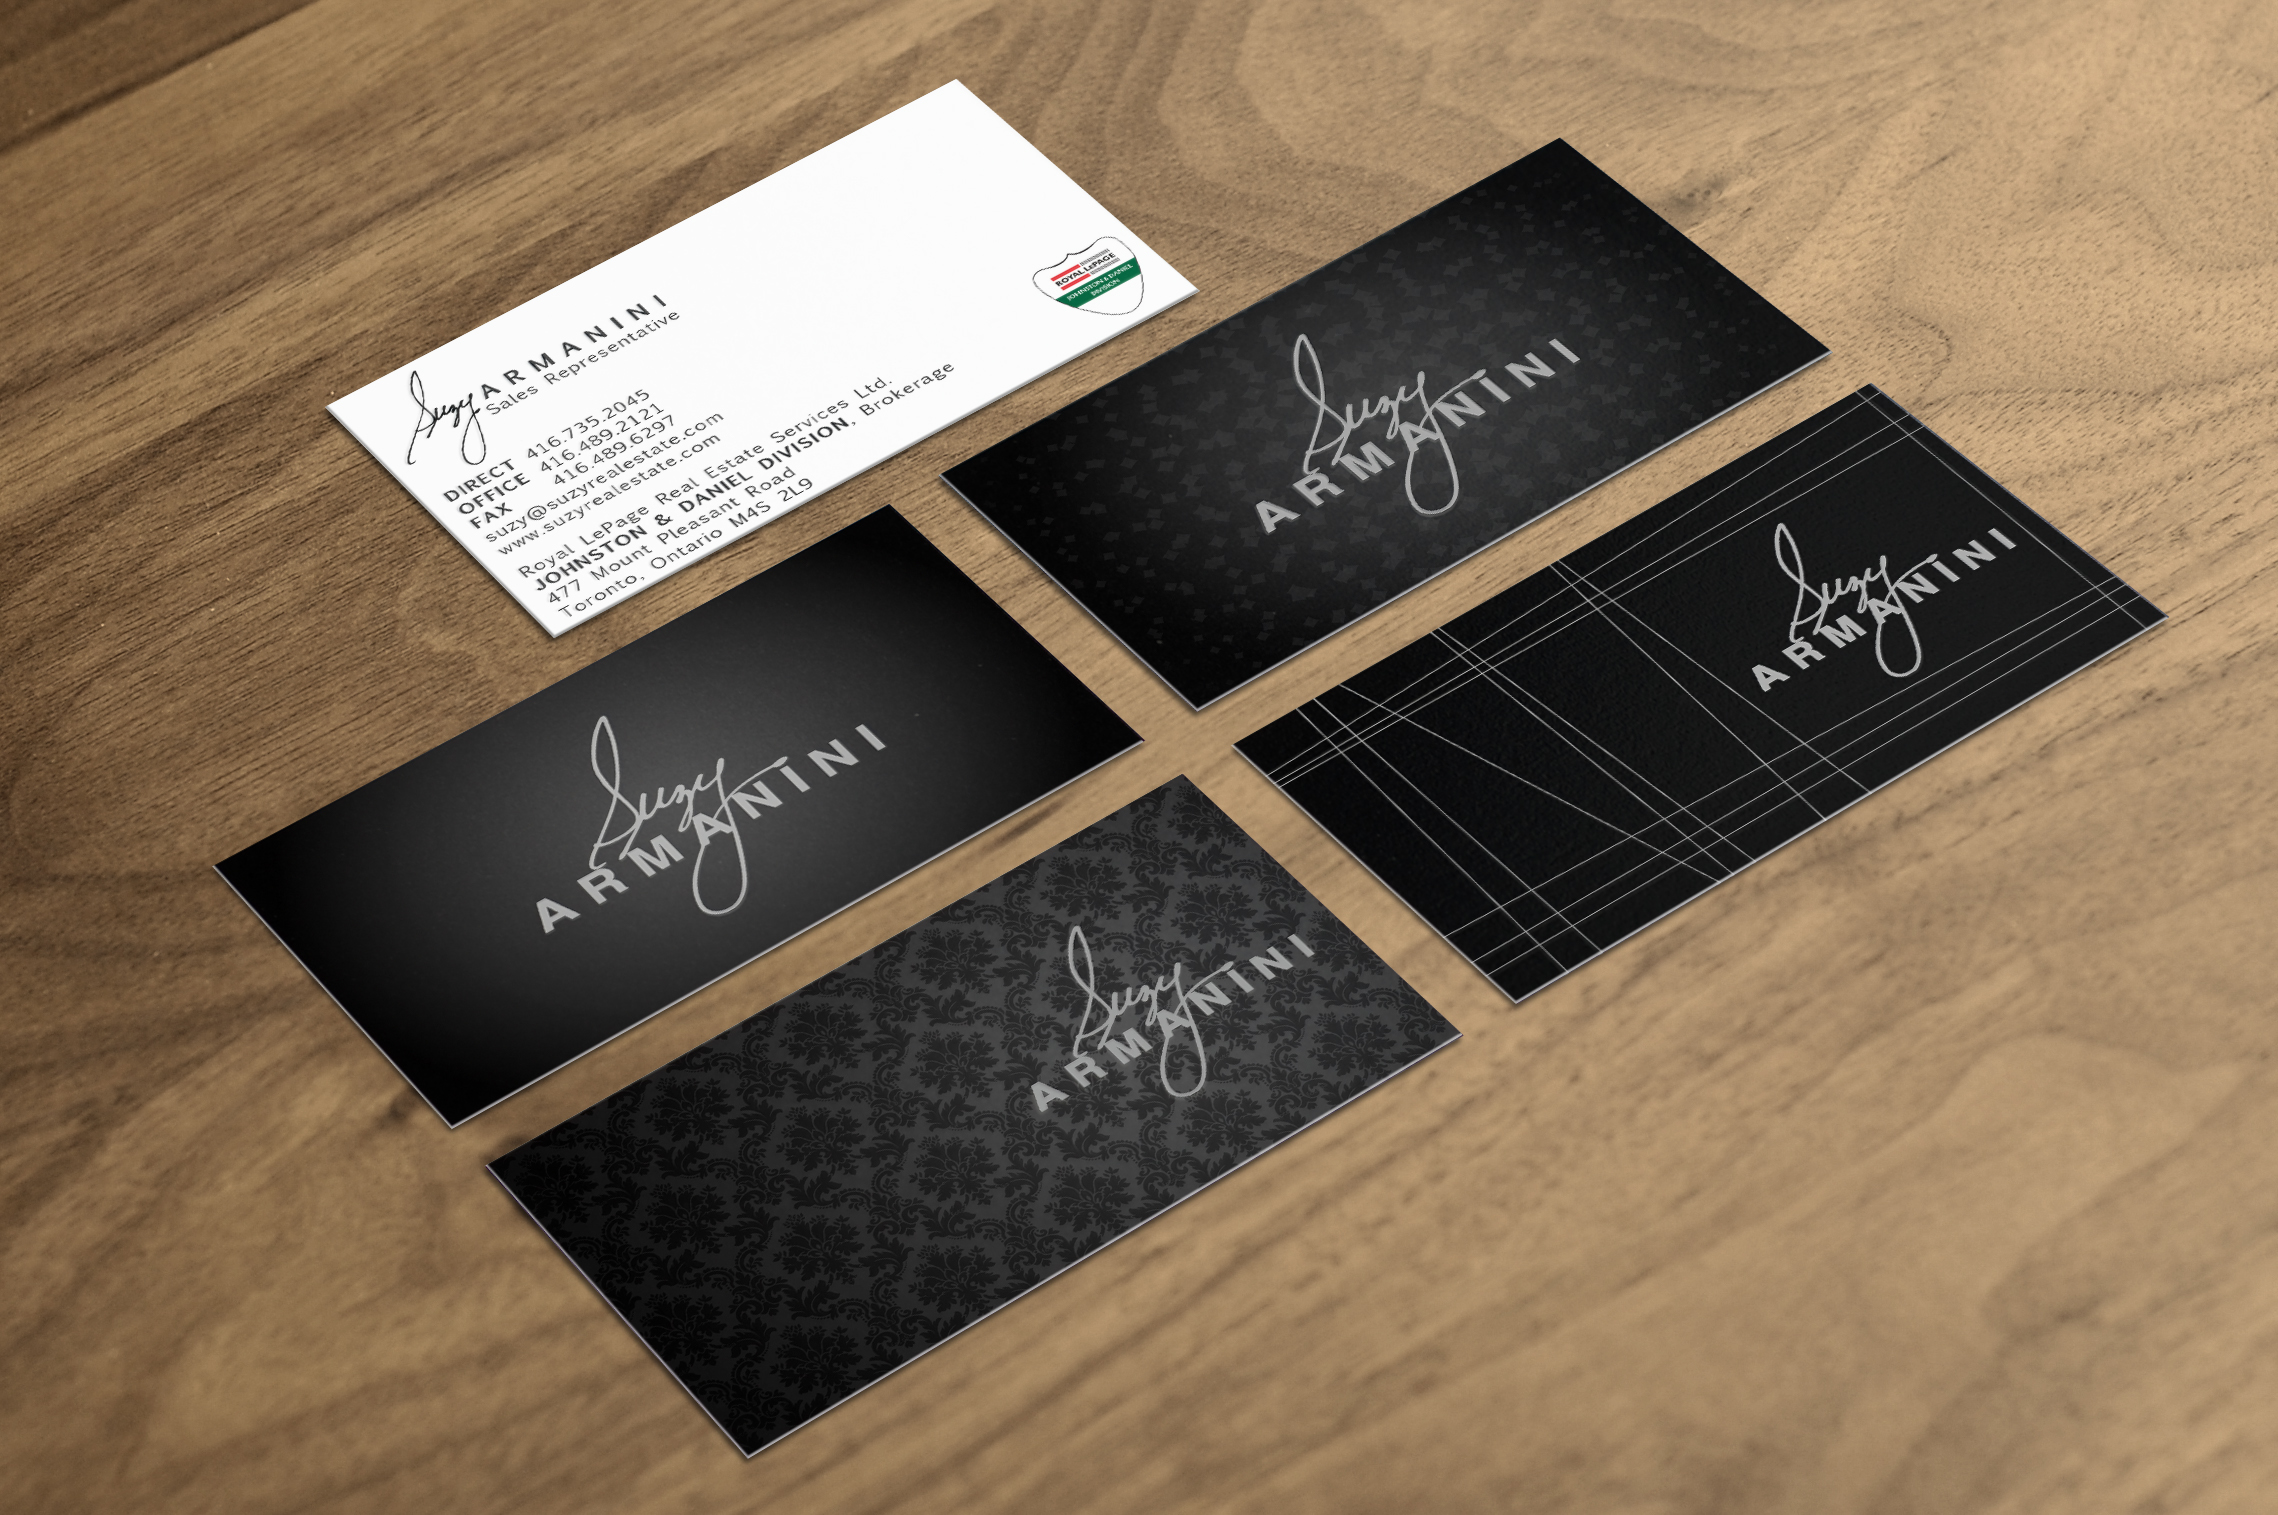 Real estate business card templates image collections templates amazing realtor business card ideas images business card ideas real estate business card templates gallery templates alramifo Gallery